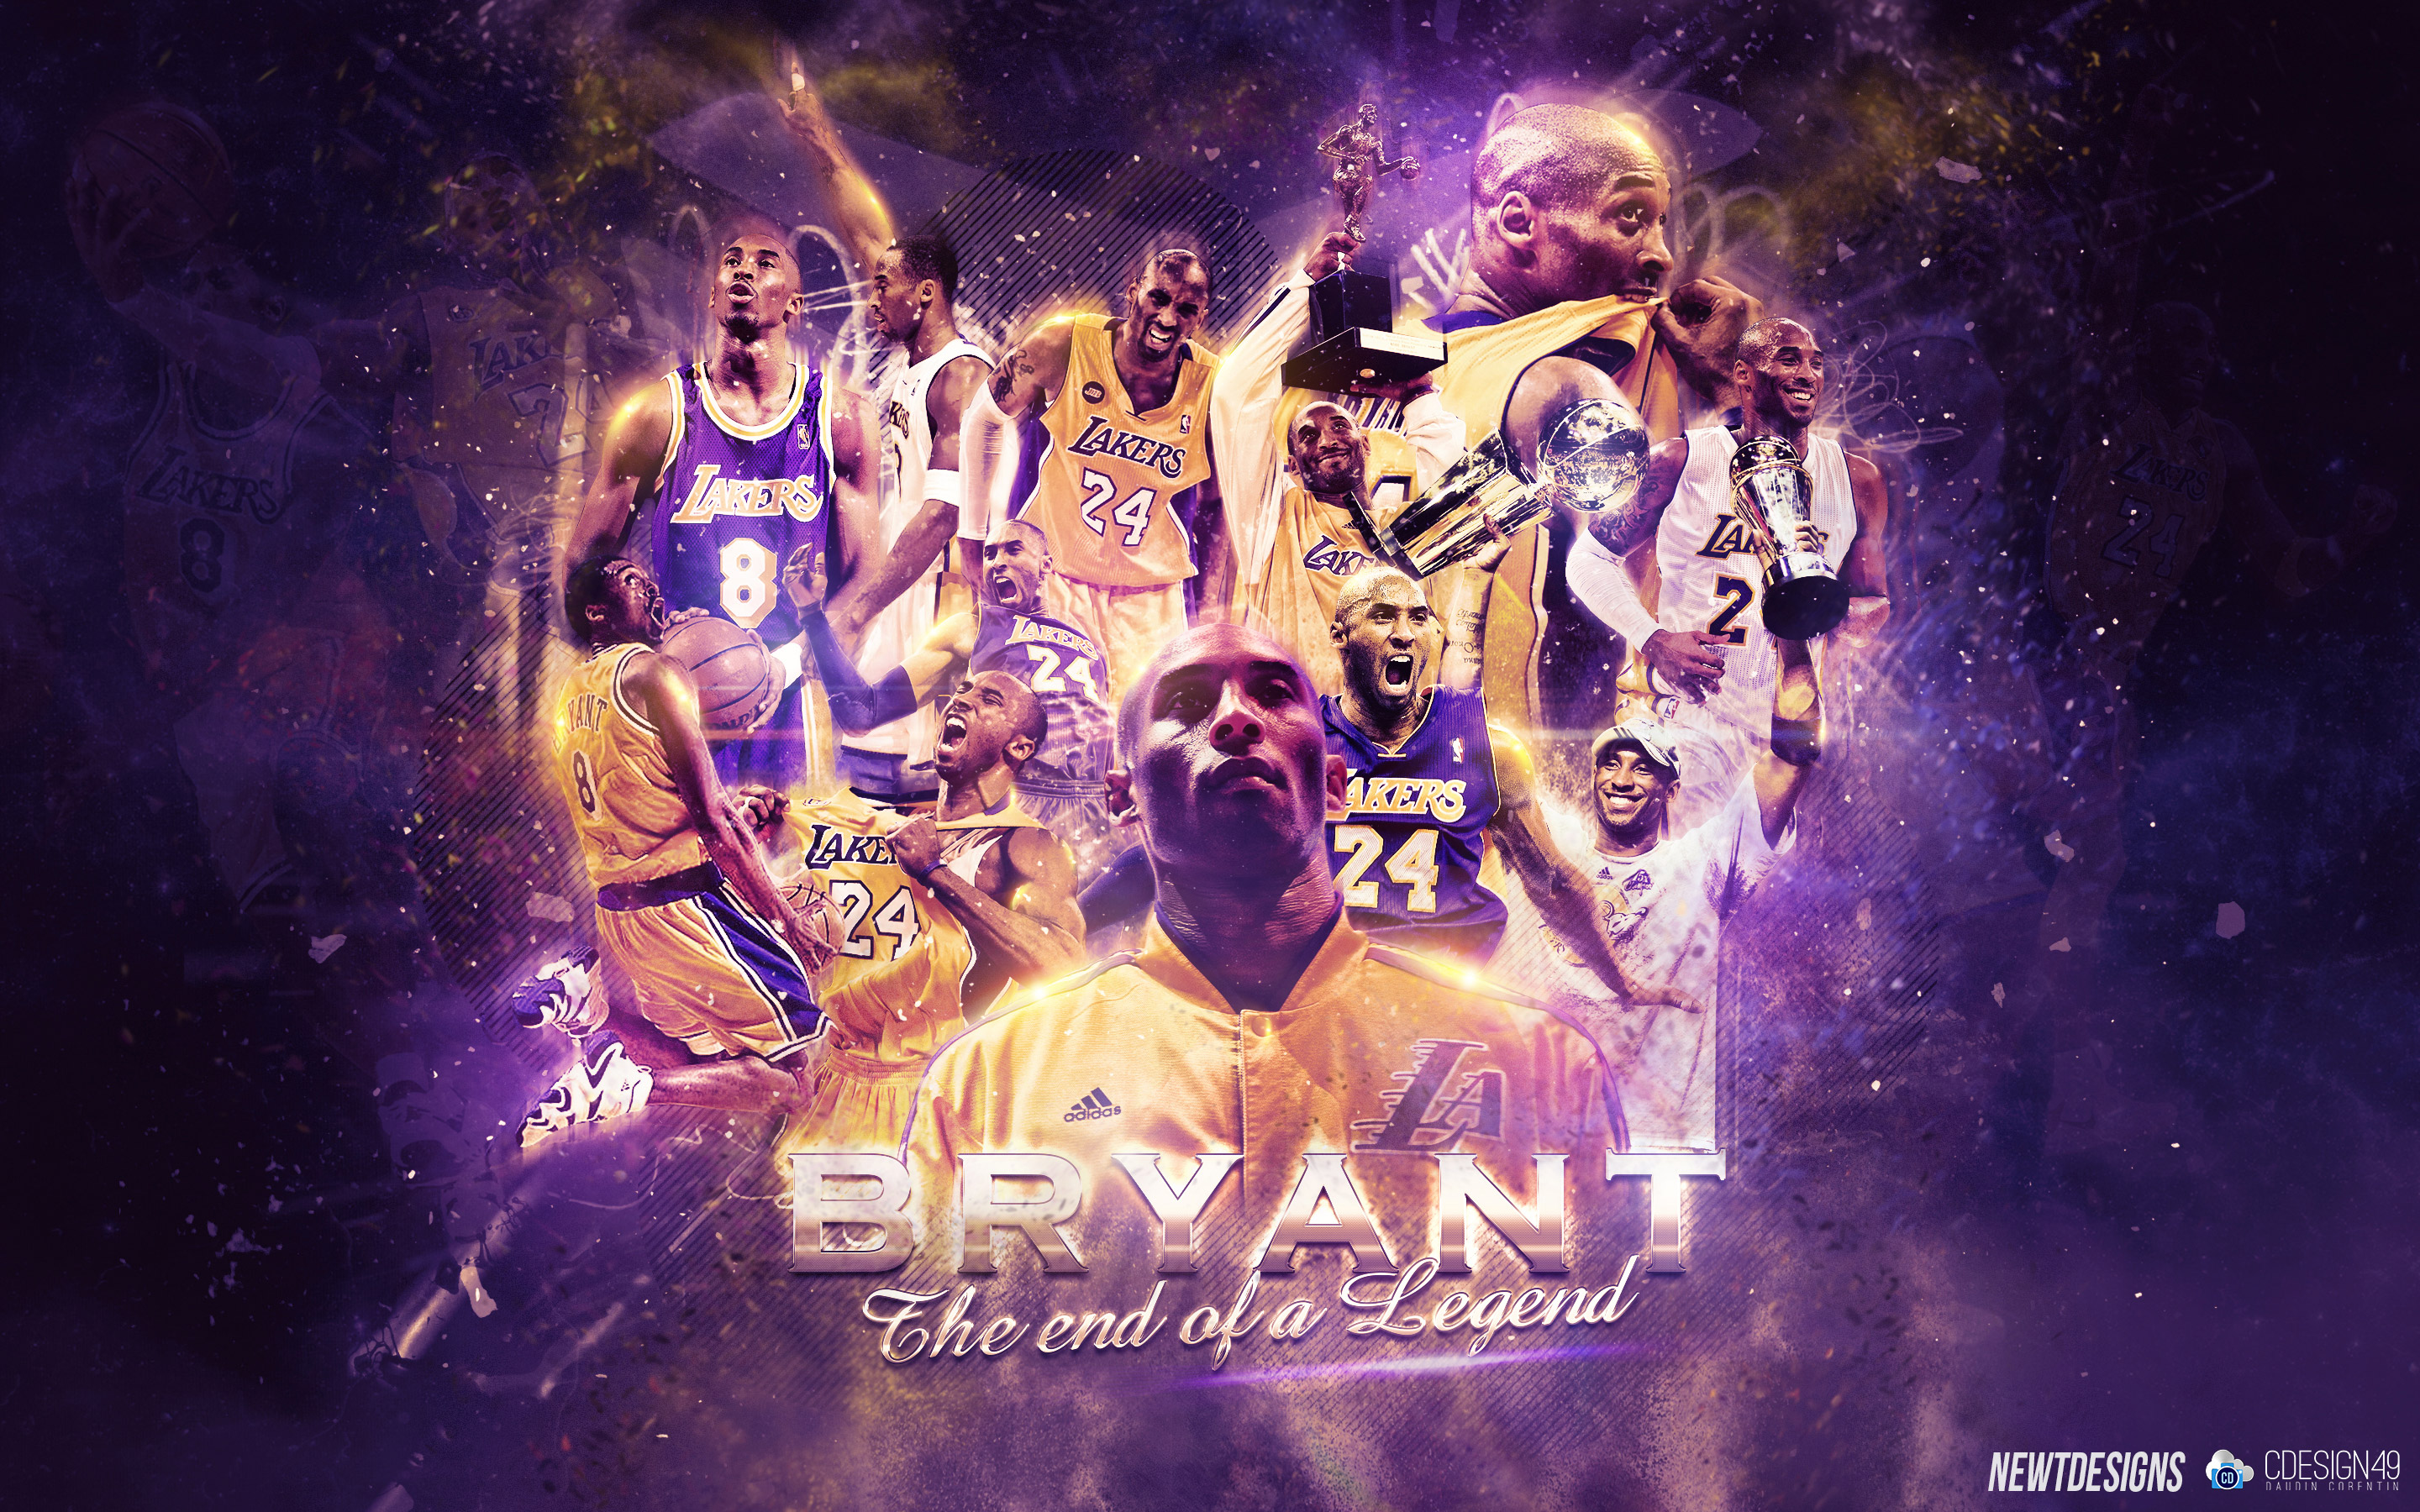 Kobe Bryant The End of a Legend Wallpaper